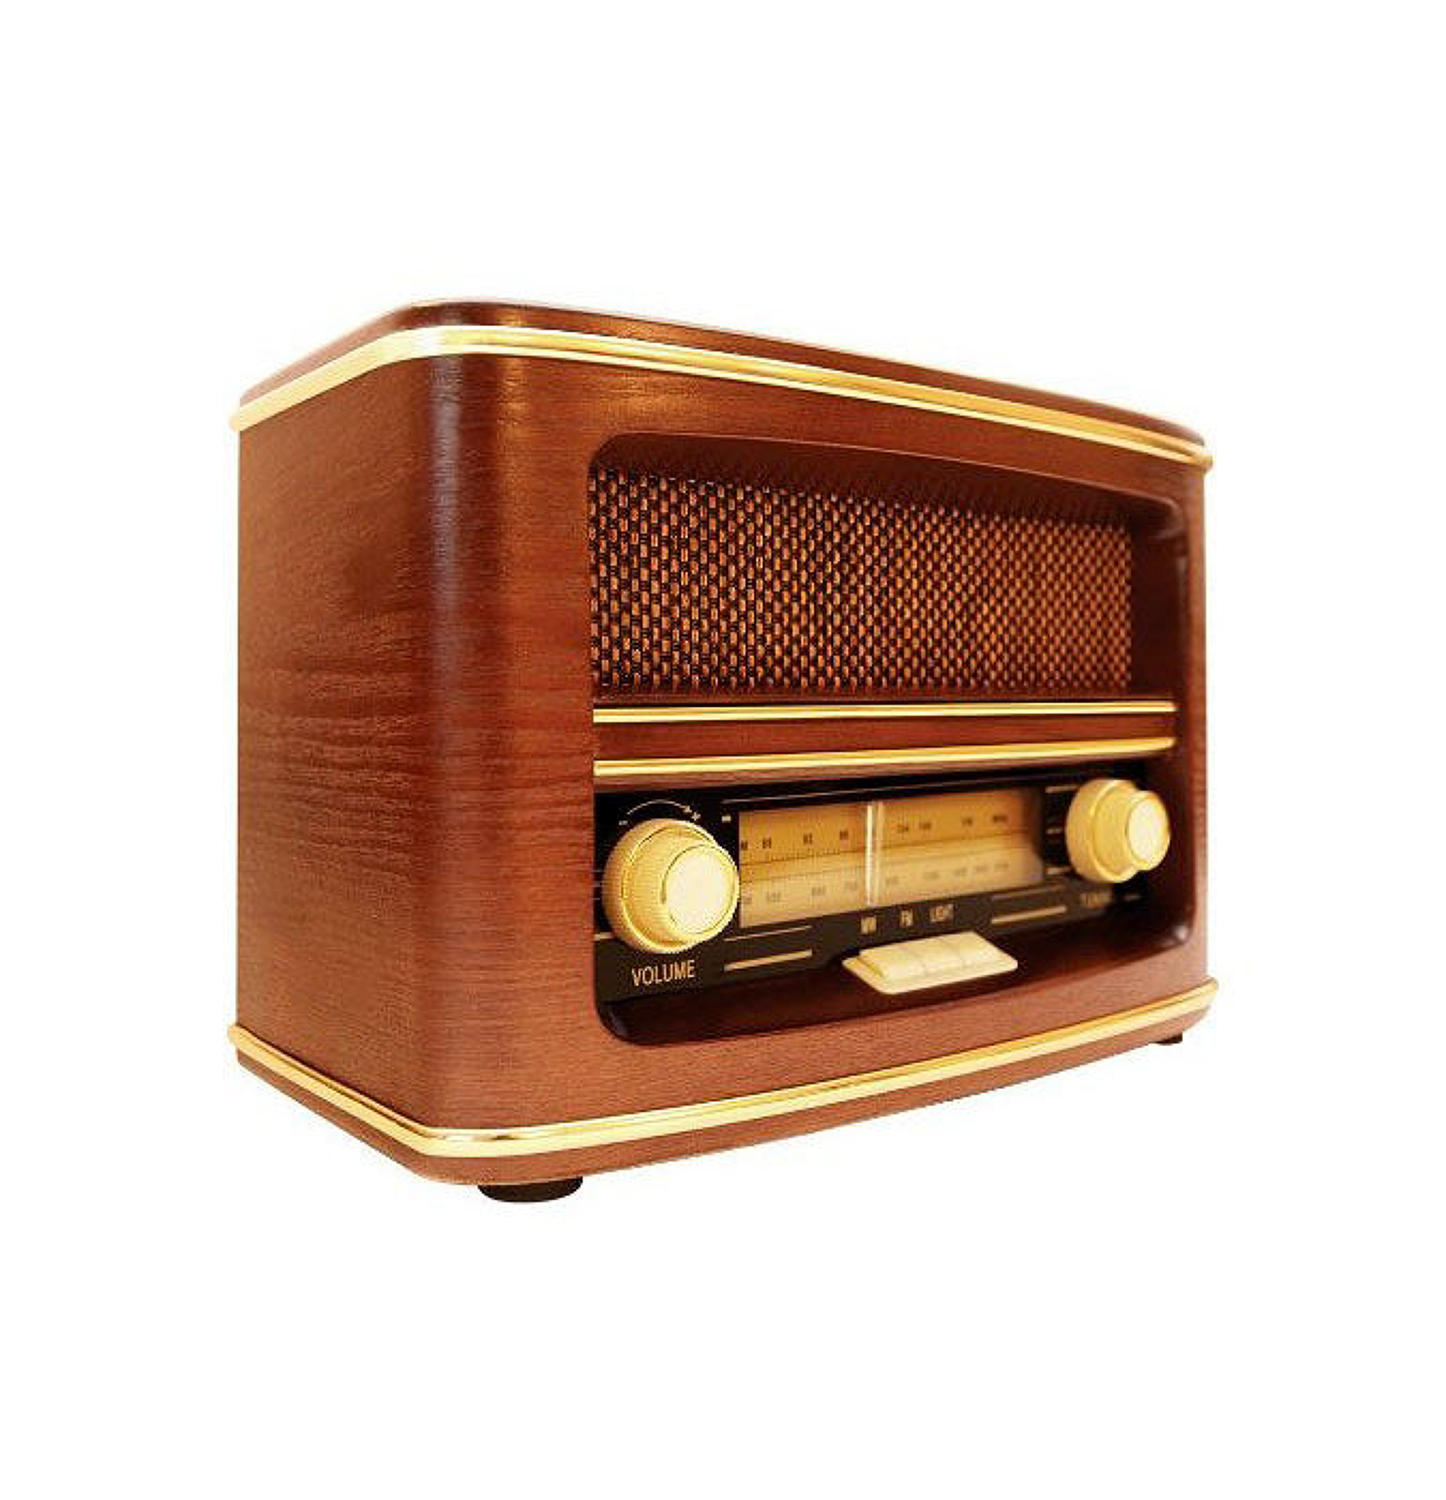 Winchester - Vintage style radio gets digital update